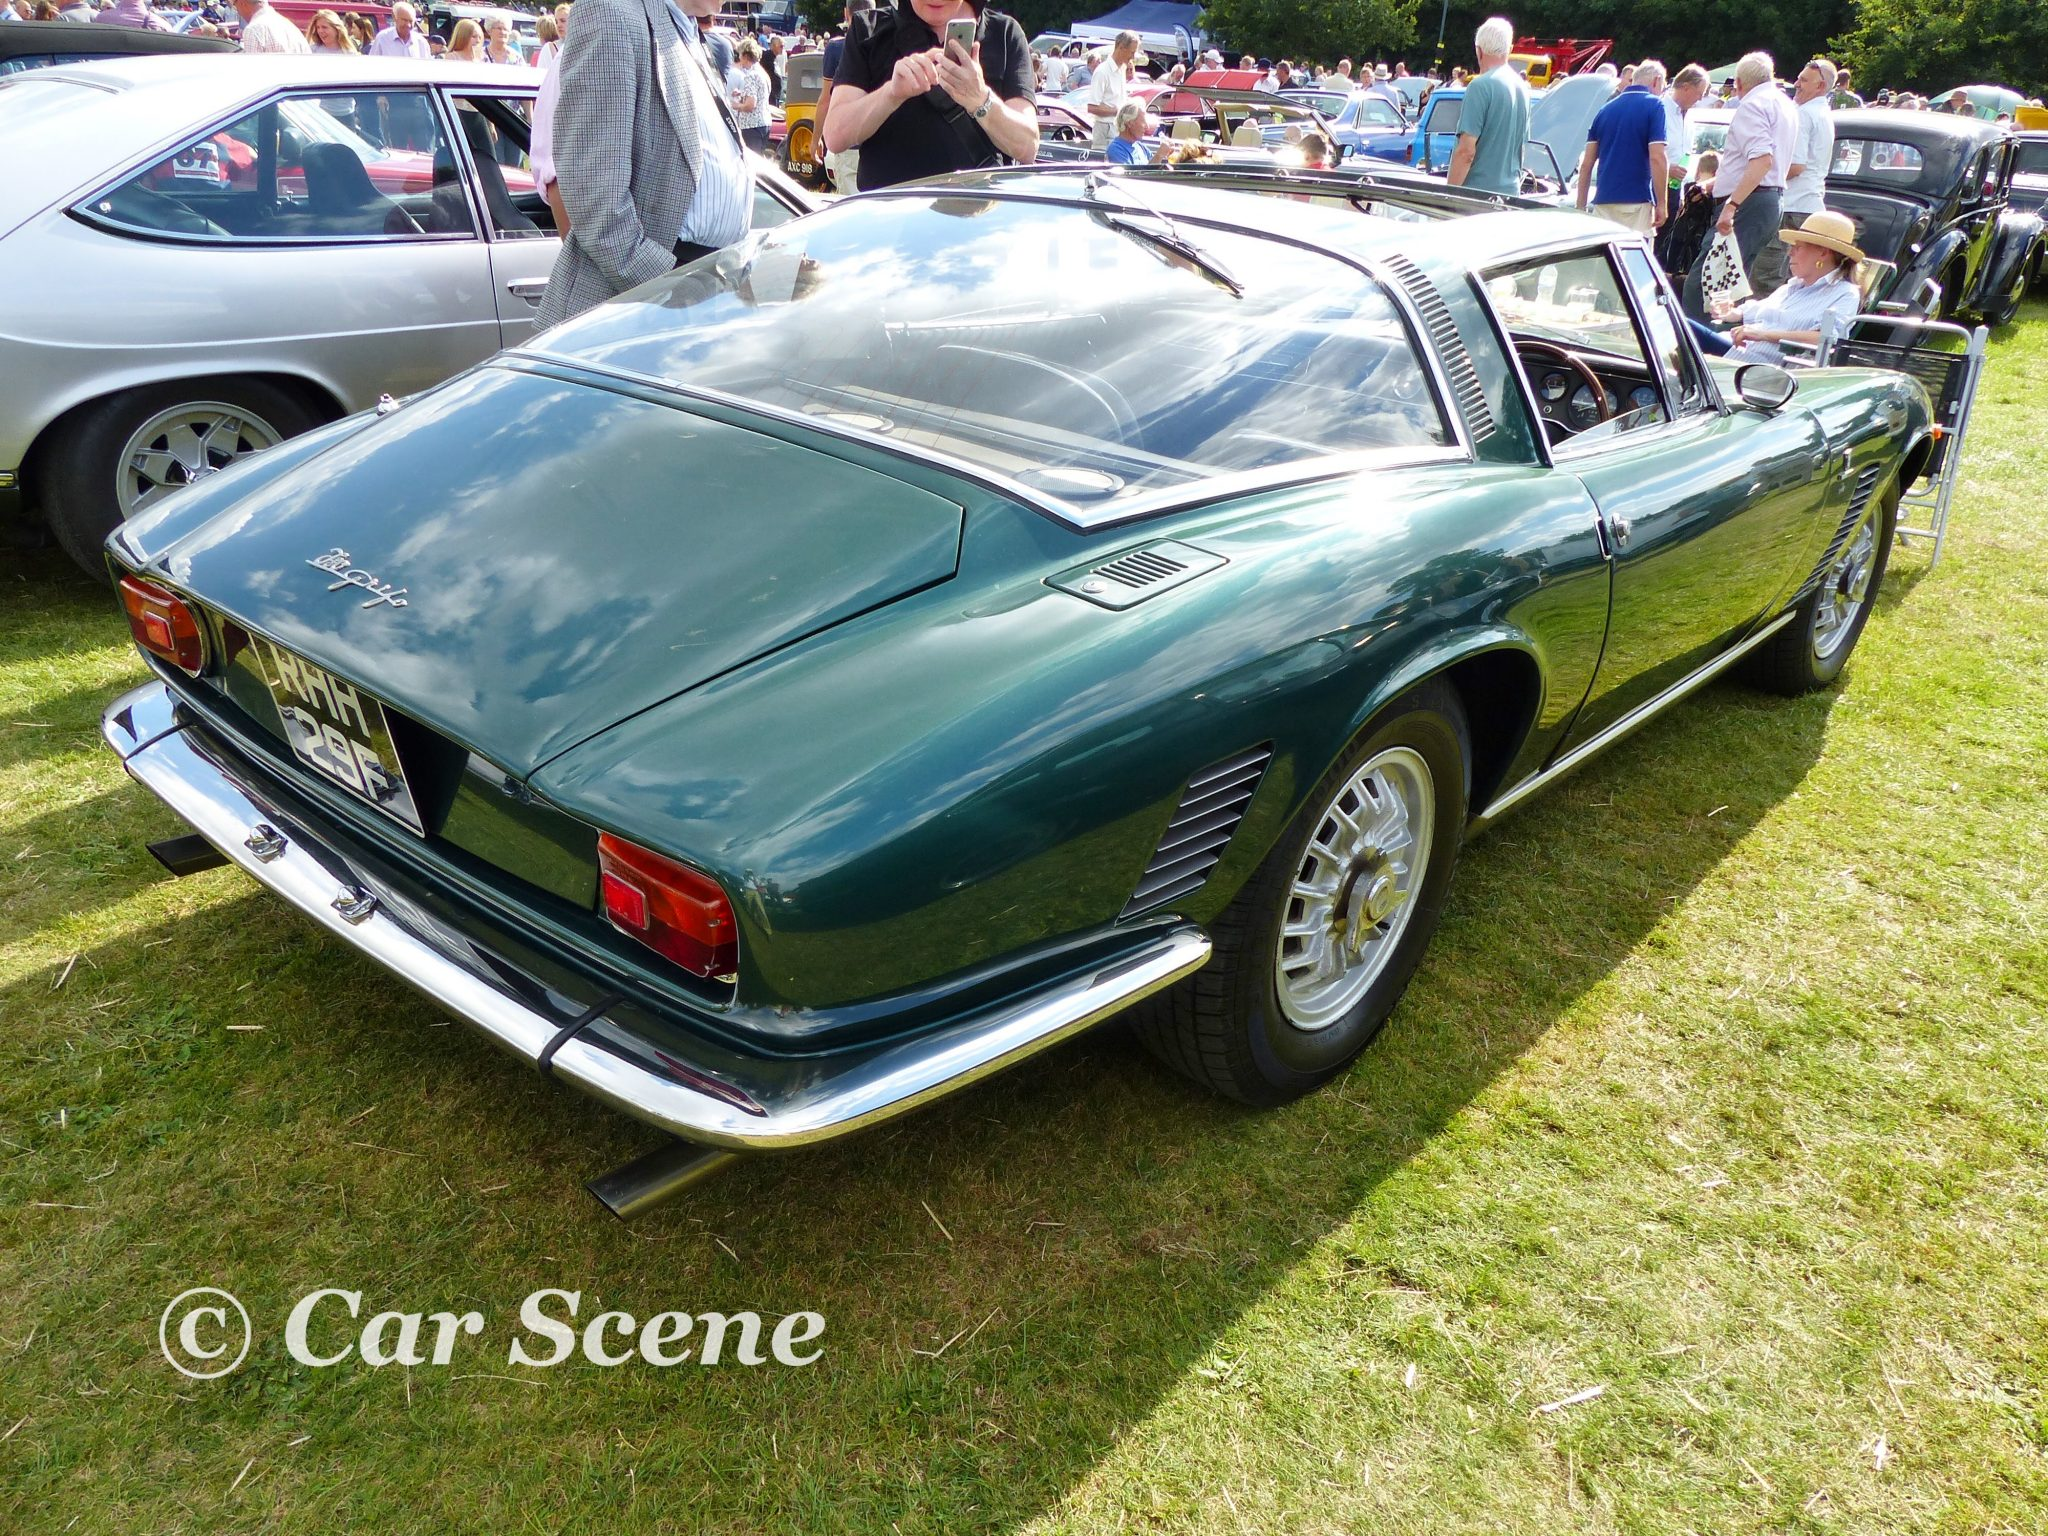 c.1968 Iso Griffo rear three quarters view